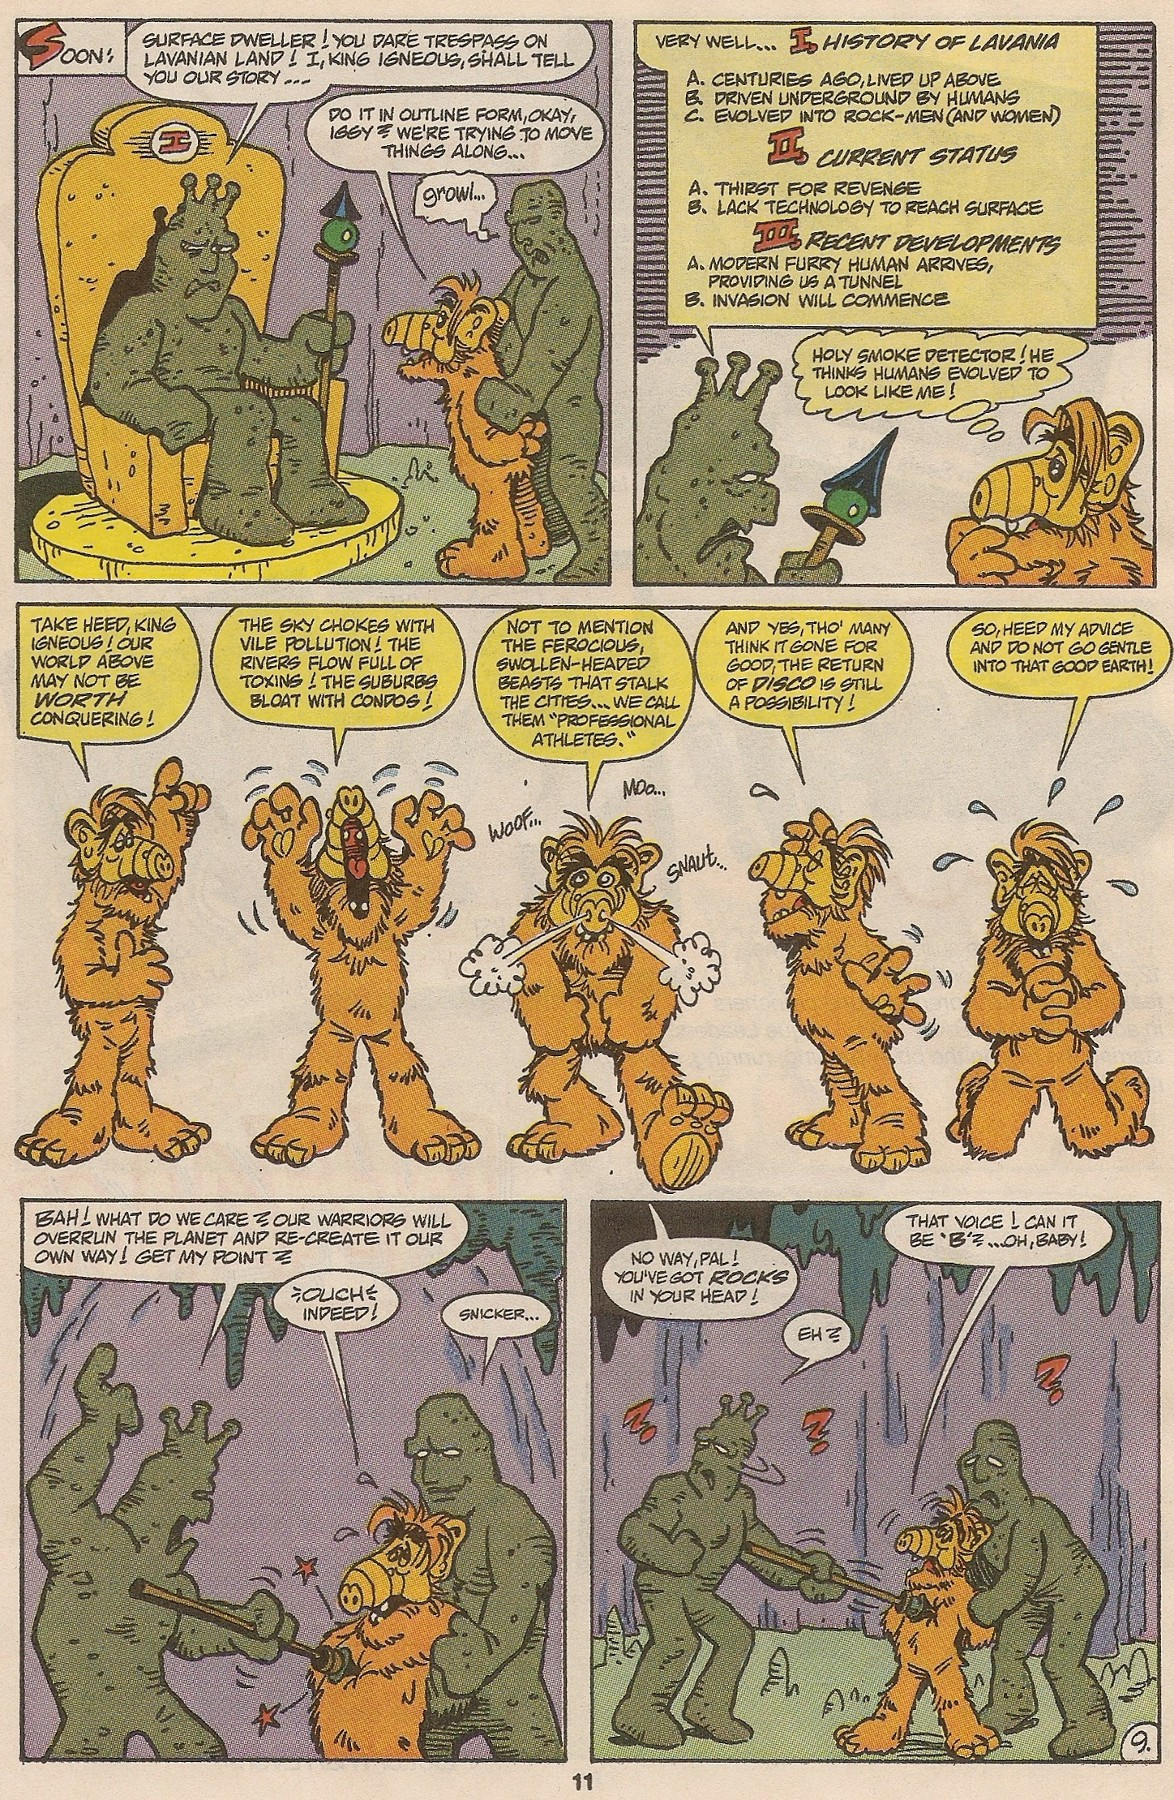 Read online ALF comic -  Issue #46 - 13